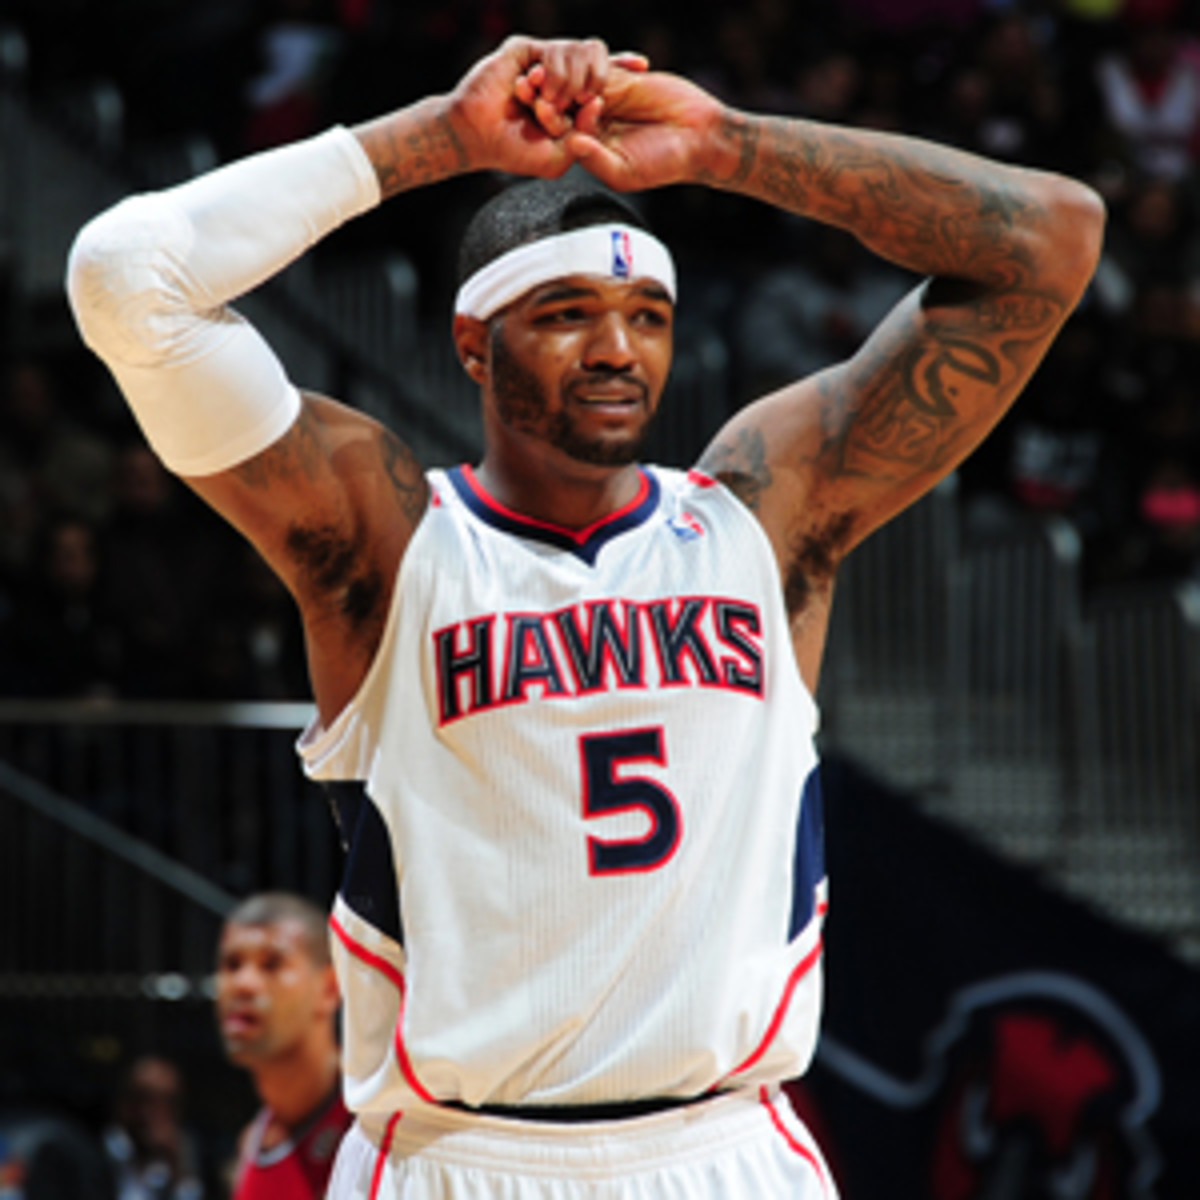 The Hawks reportedly nixed a last-minute trade of Josh Smith before he becomes a free agent. (Scott Cunningham/NBAE via Getty Images)